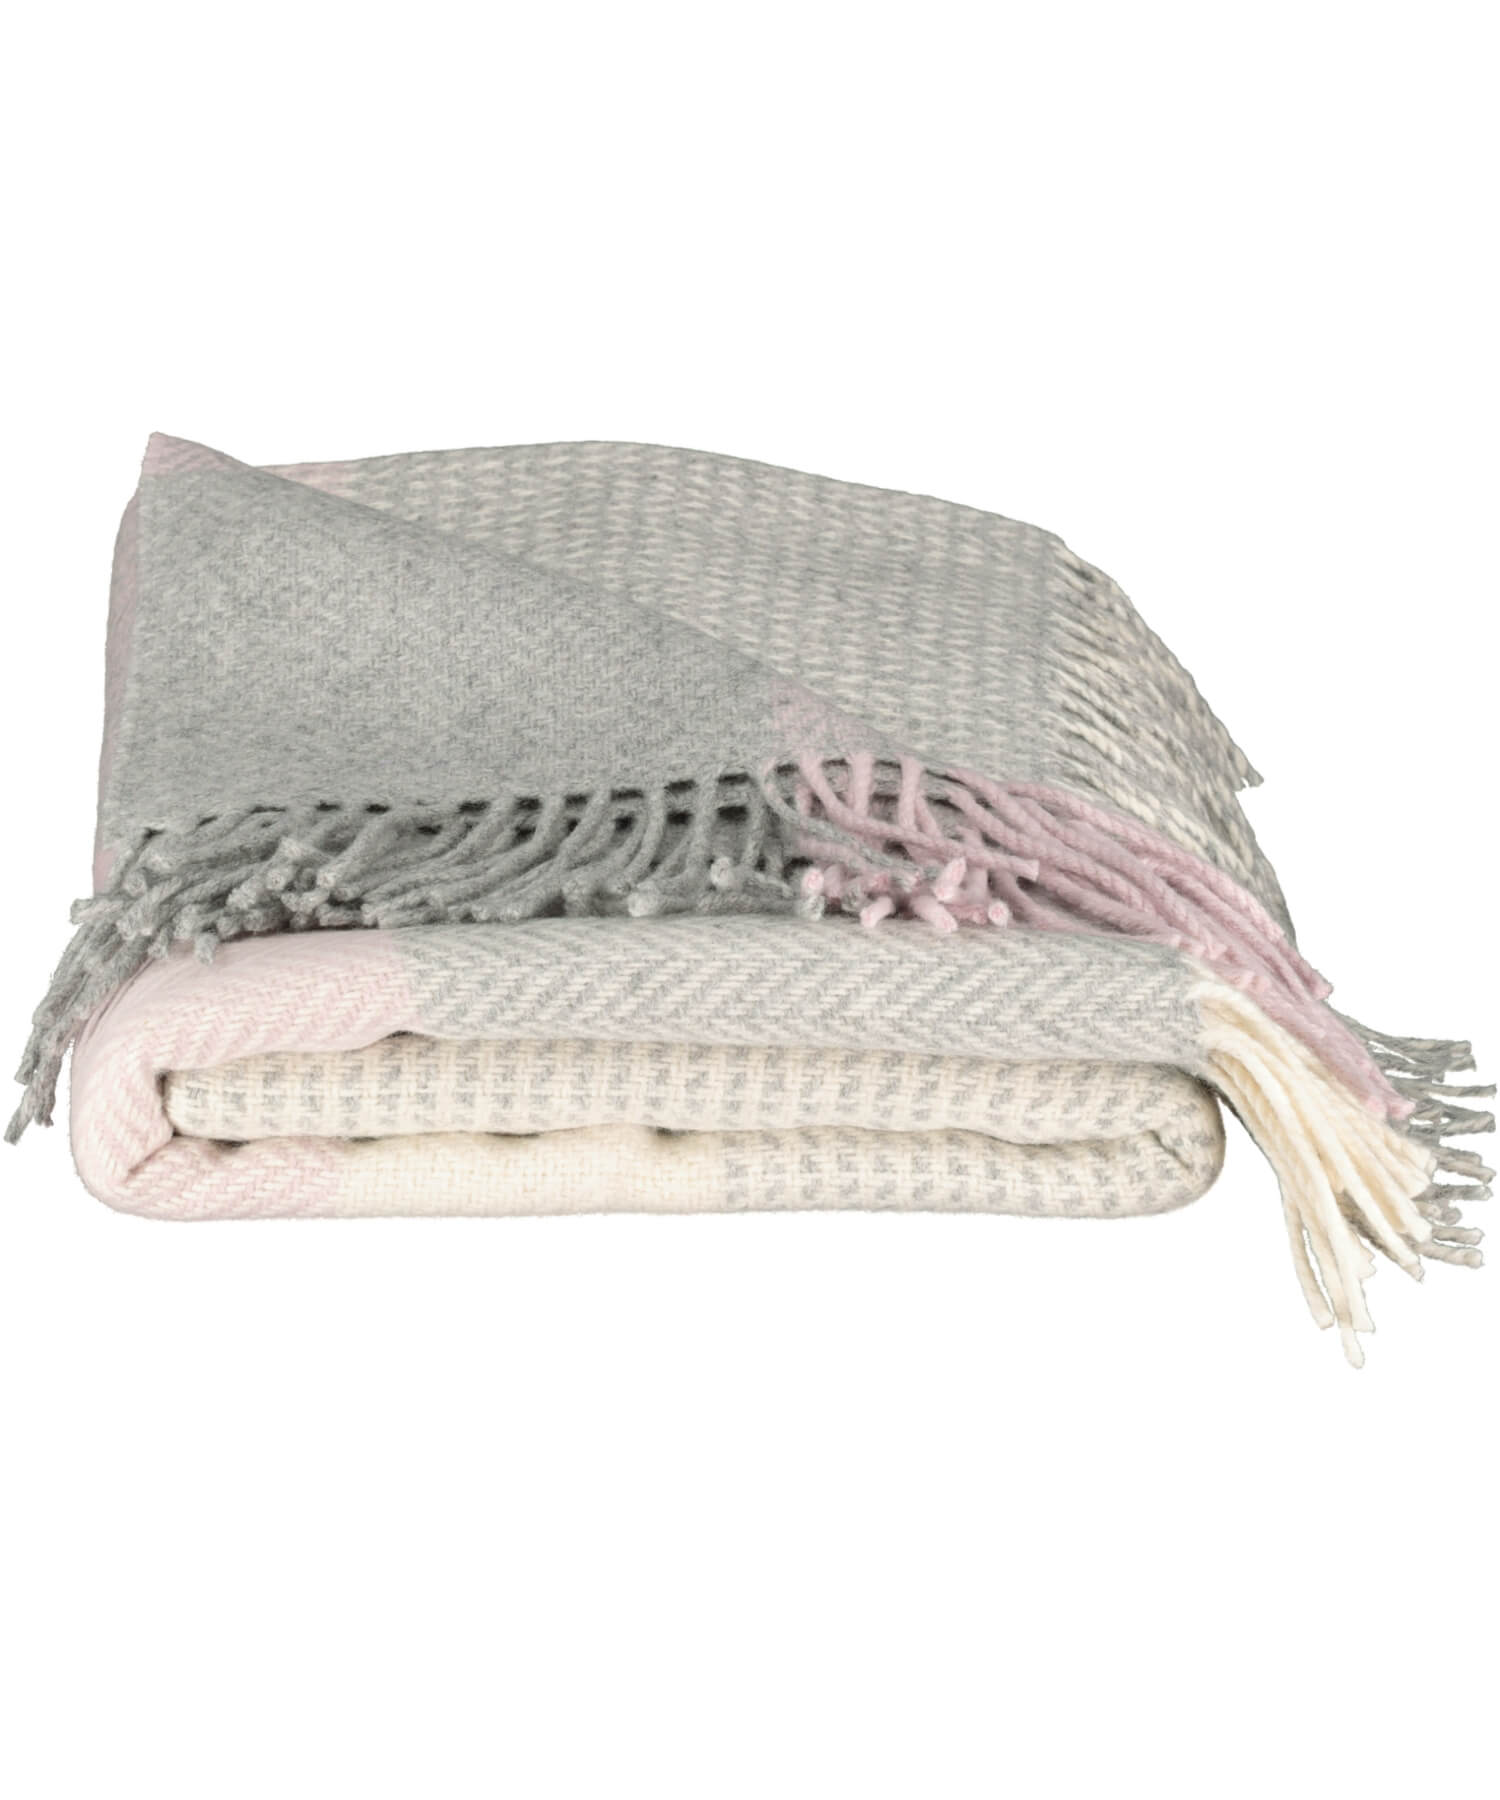 Luxury Throw - Port Mor - [Foxford] - Throws & Cushions - Irish Gifts